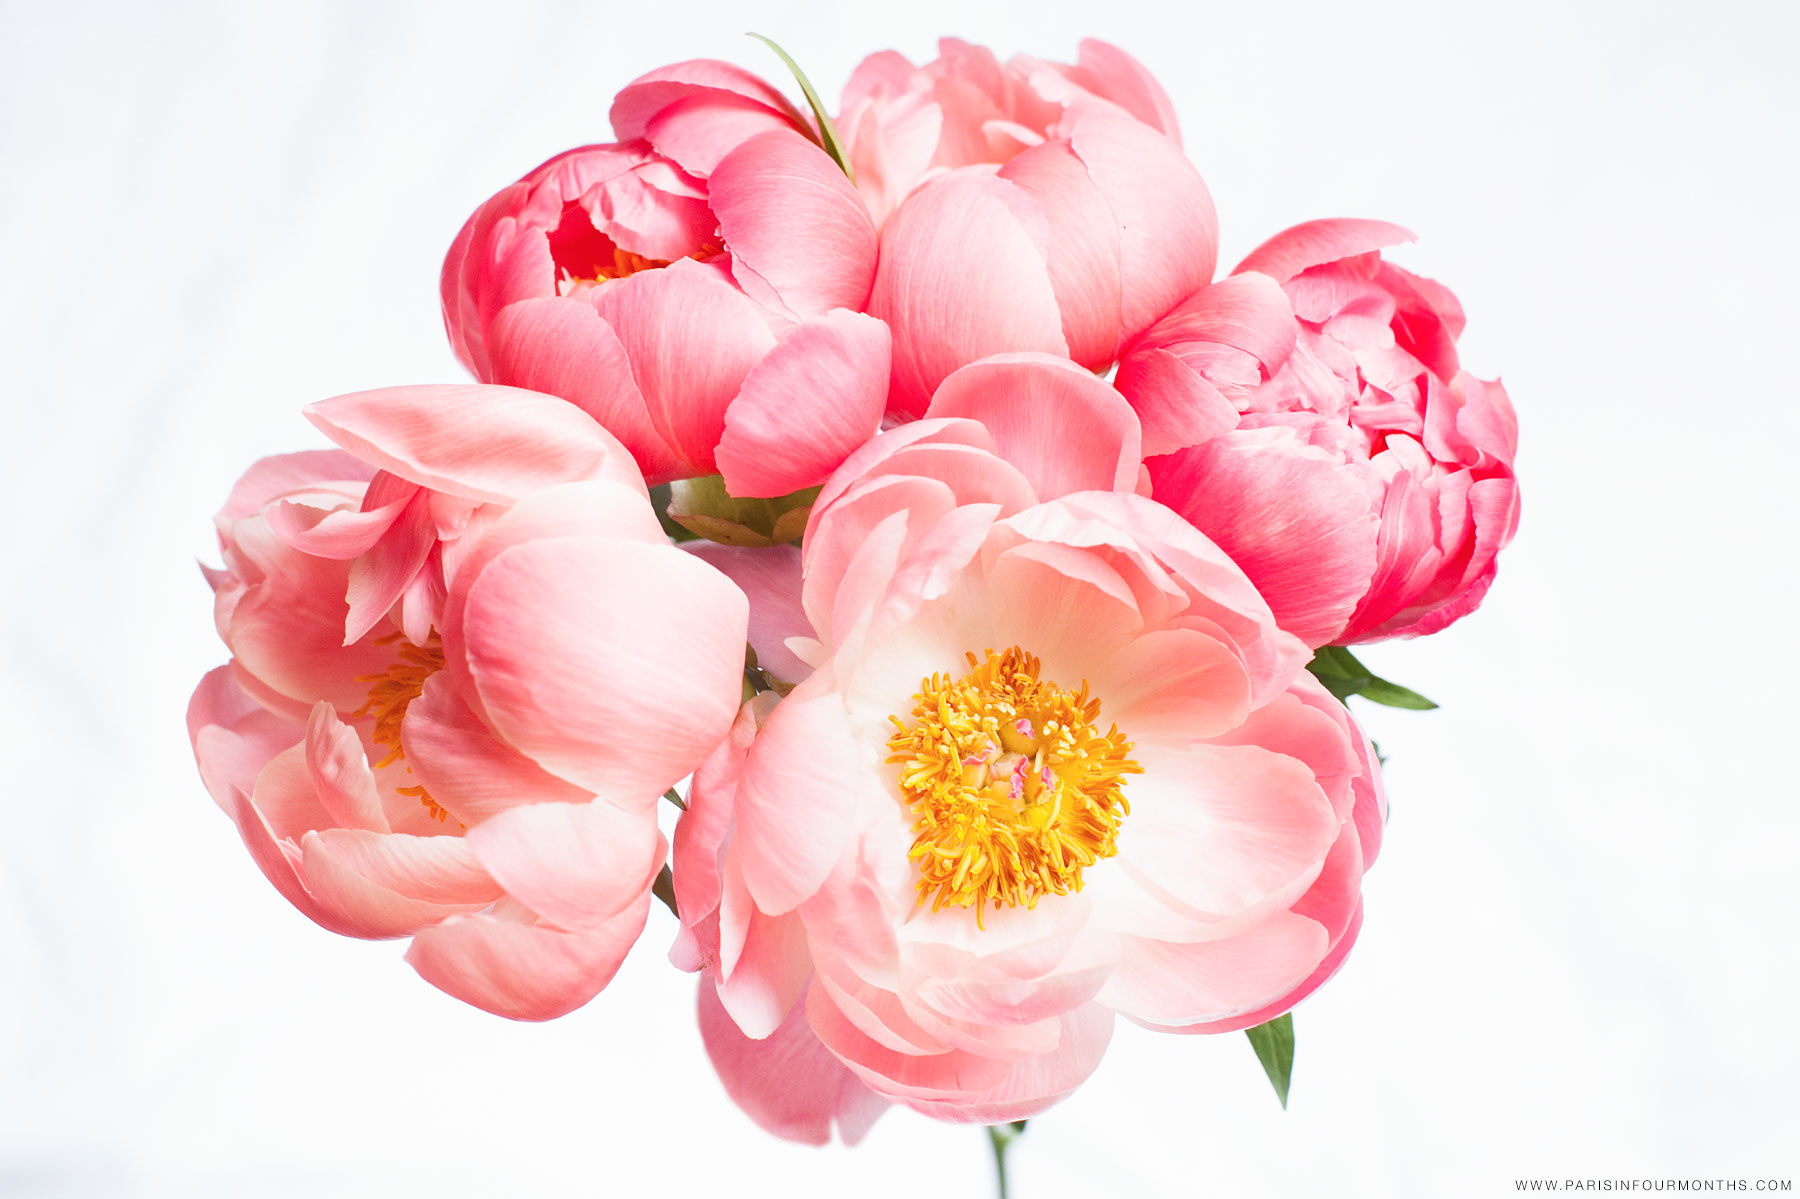 Pink peonies by Carin Olsson (Paris in Four Months)